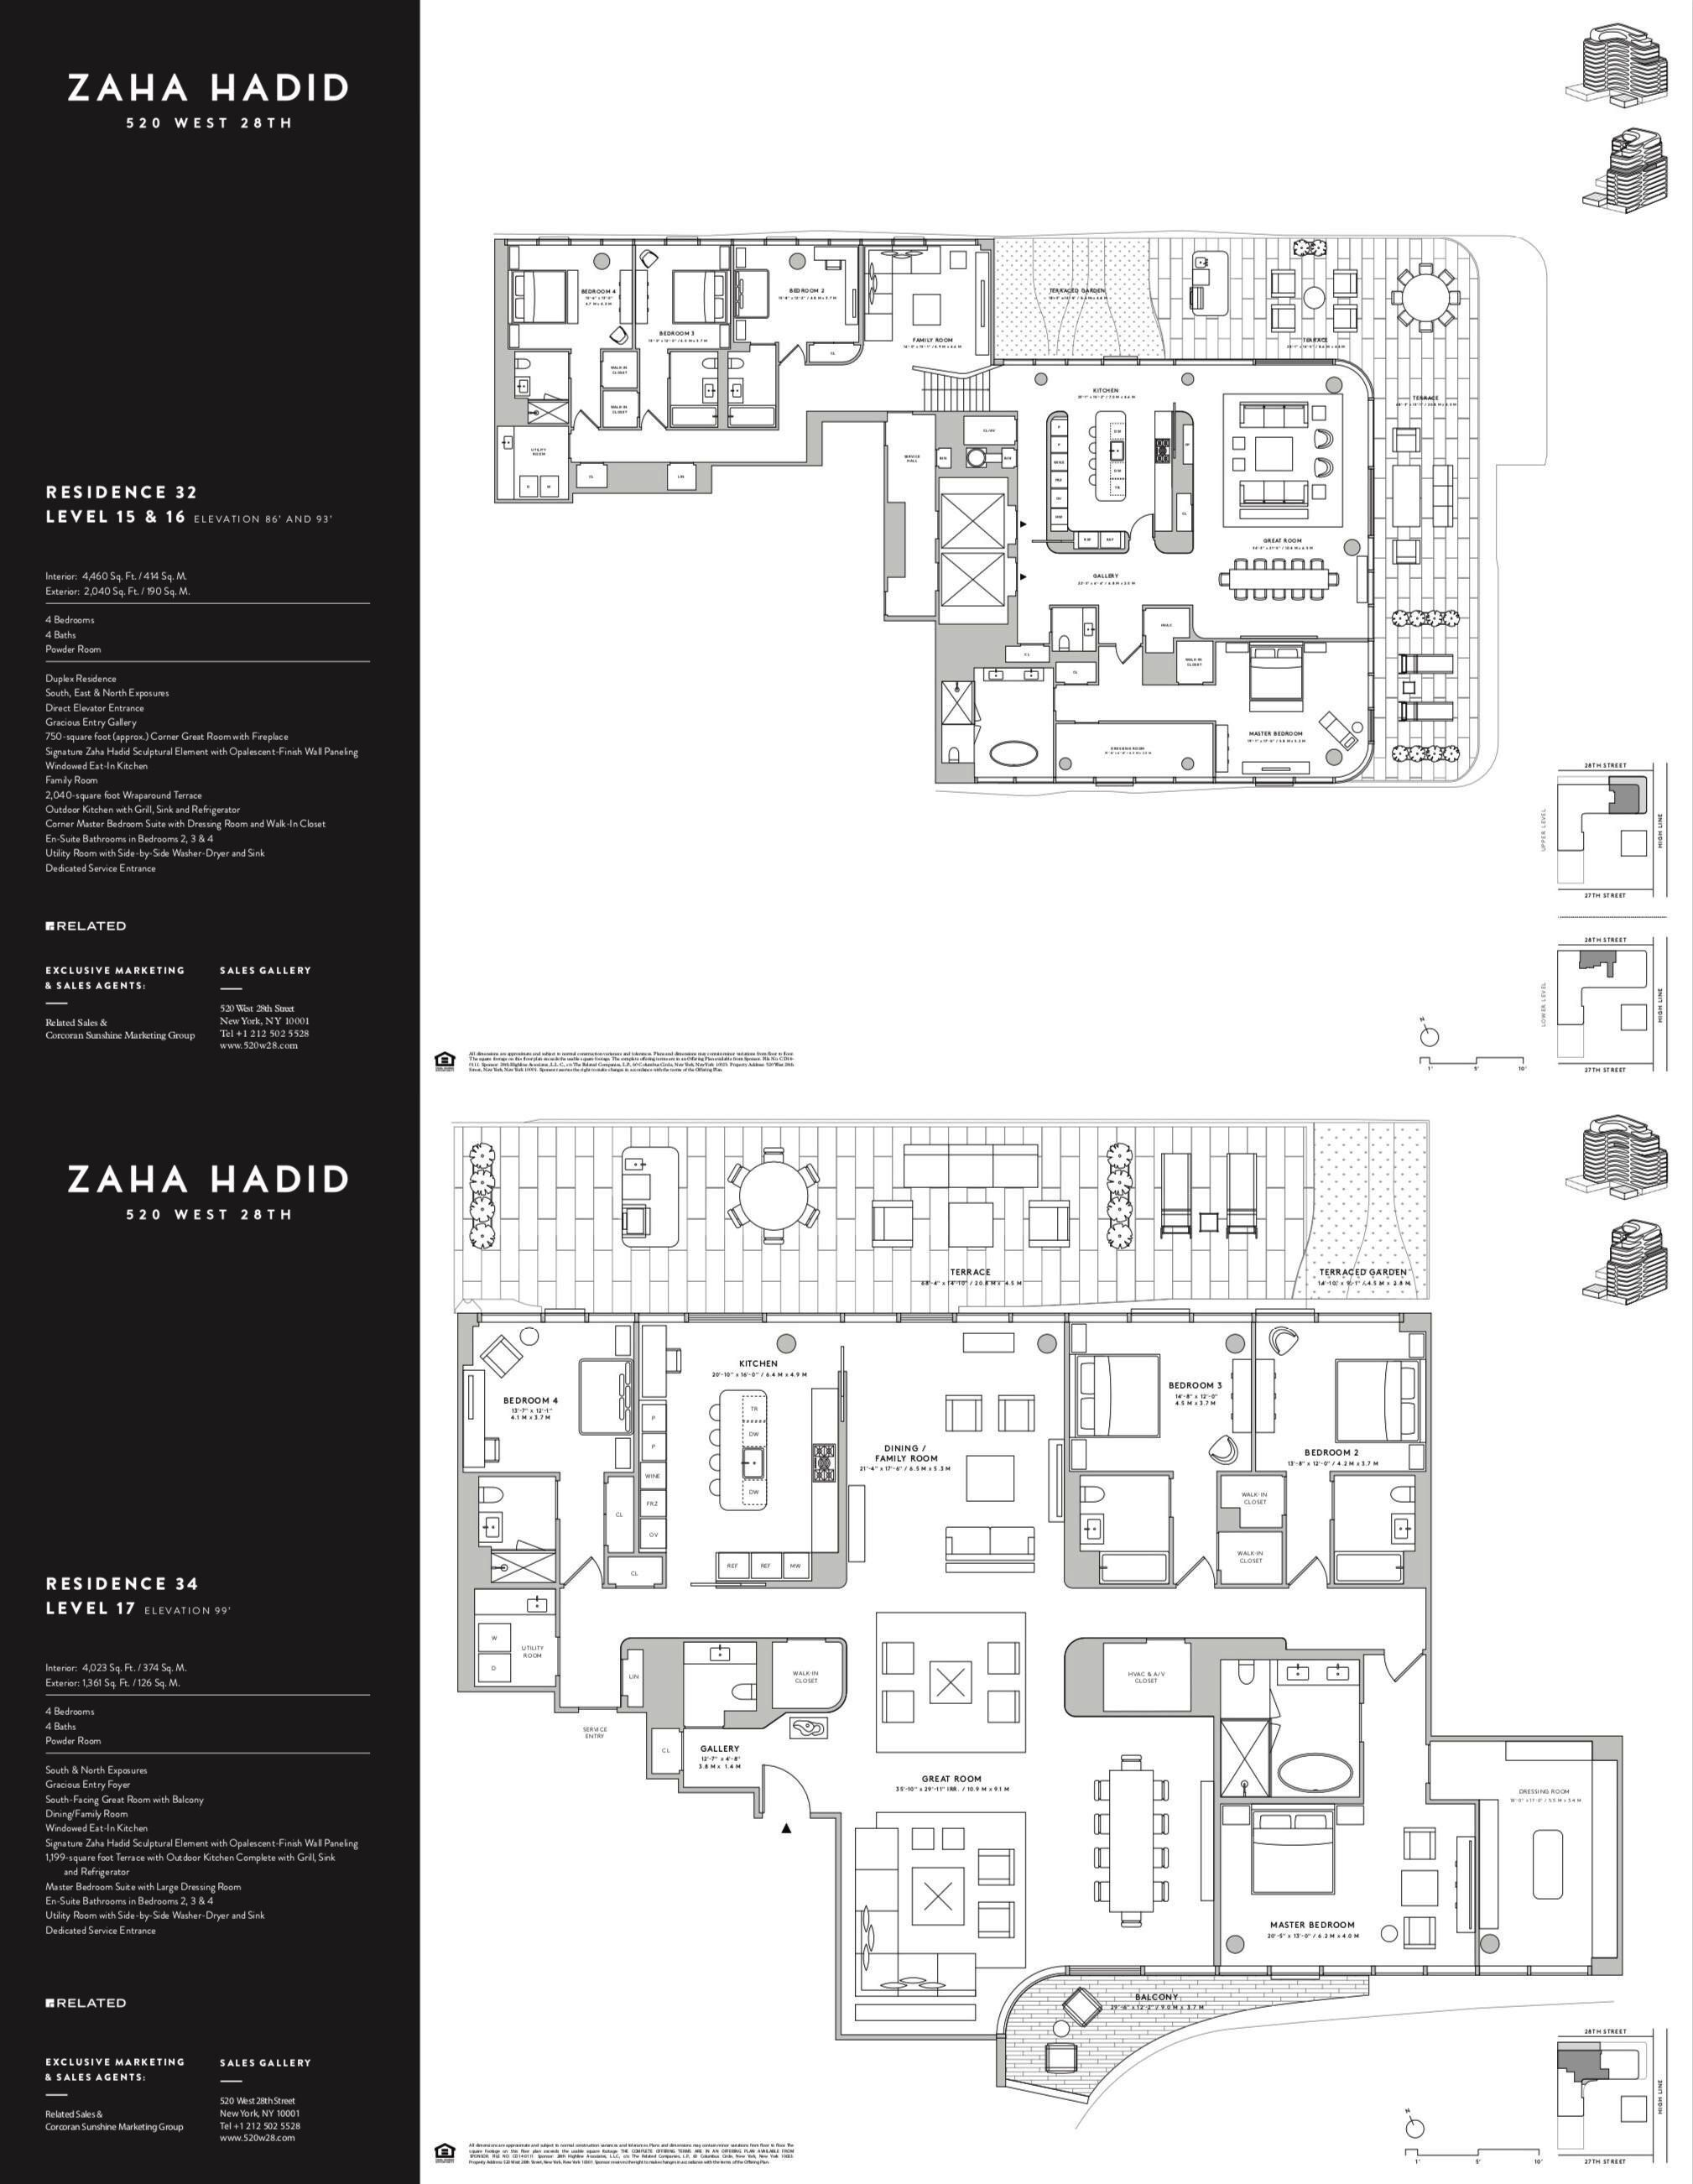 520 W 28th Street By Zaha Hadid Residence 32 34 Layout Architecture Penthouse Apartment Floor Plan Architecture Presentation